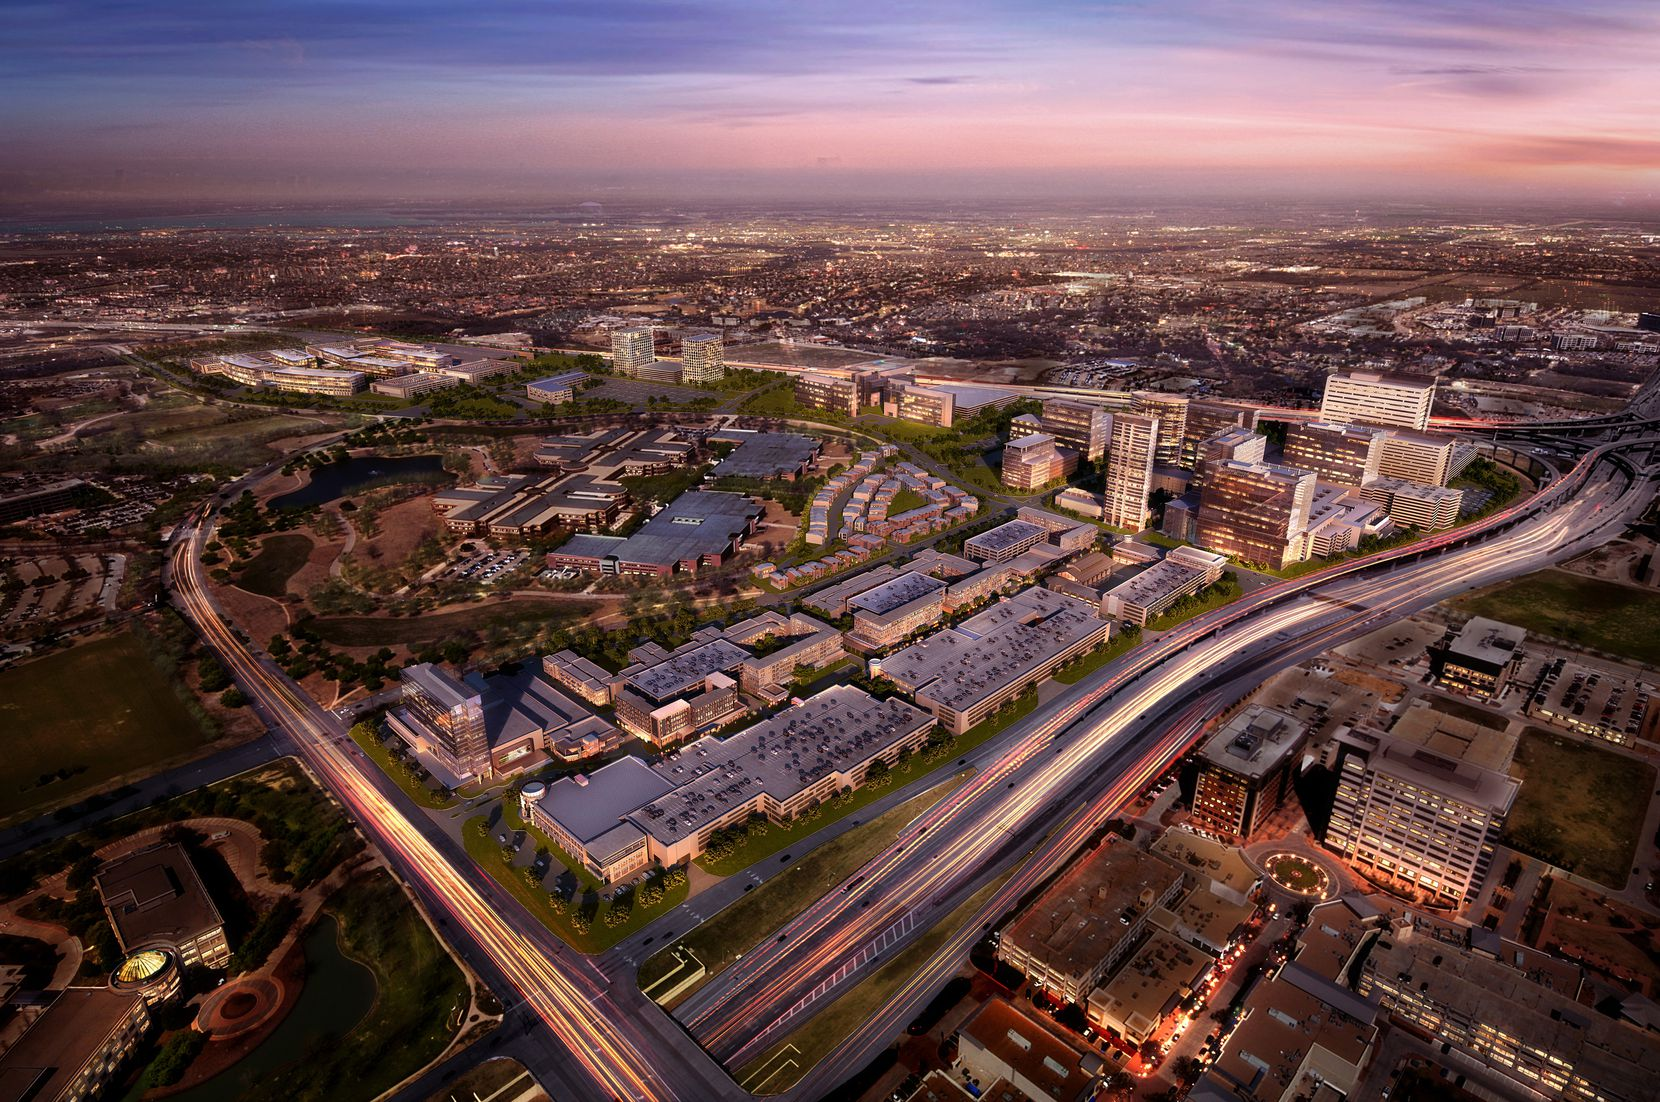 Ryan LLC will join Toyota, Liberty Mutual Insurance, JPMorgan Chase and FedEx with offices in the mixed-use Legacy West project.